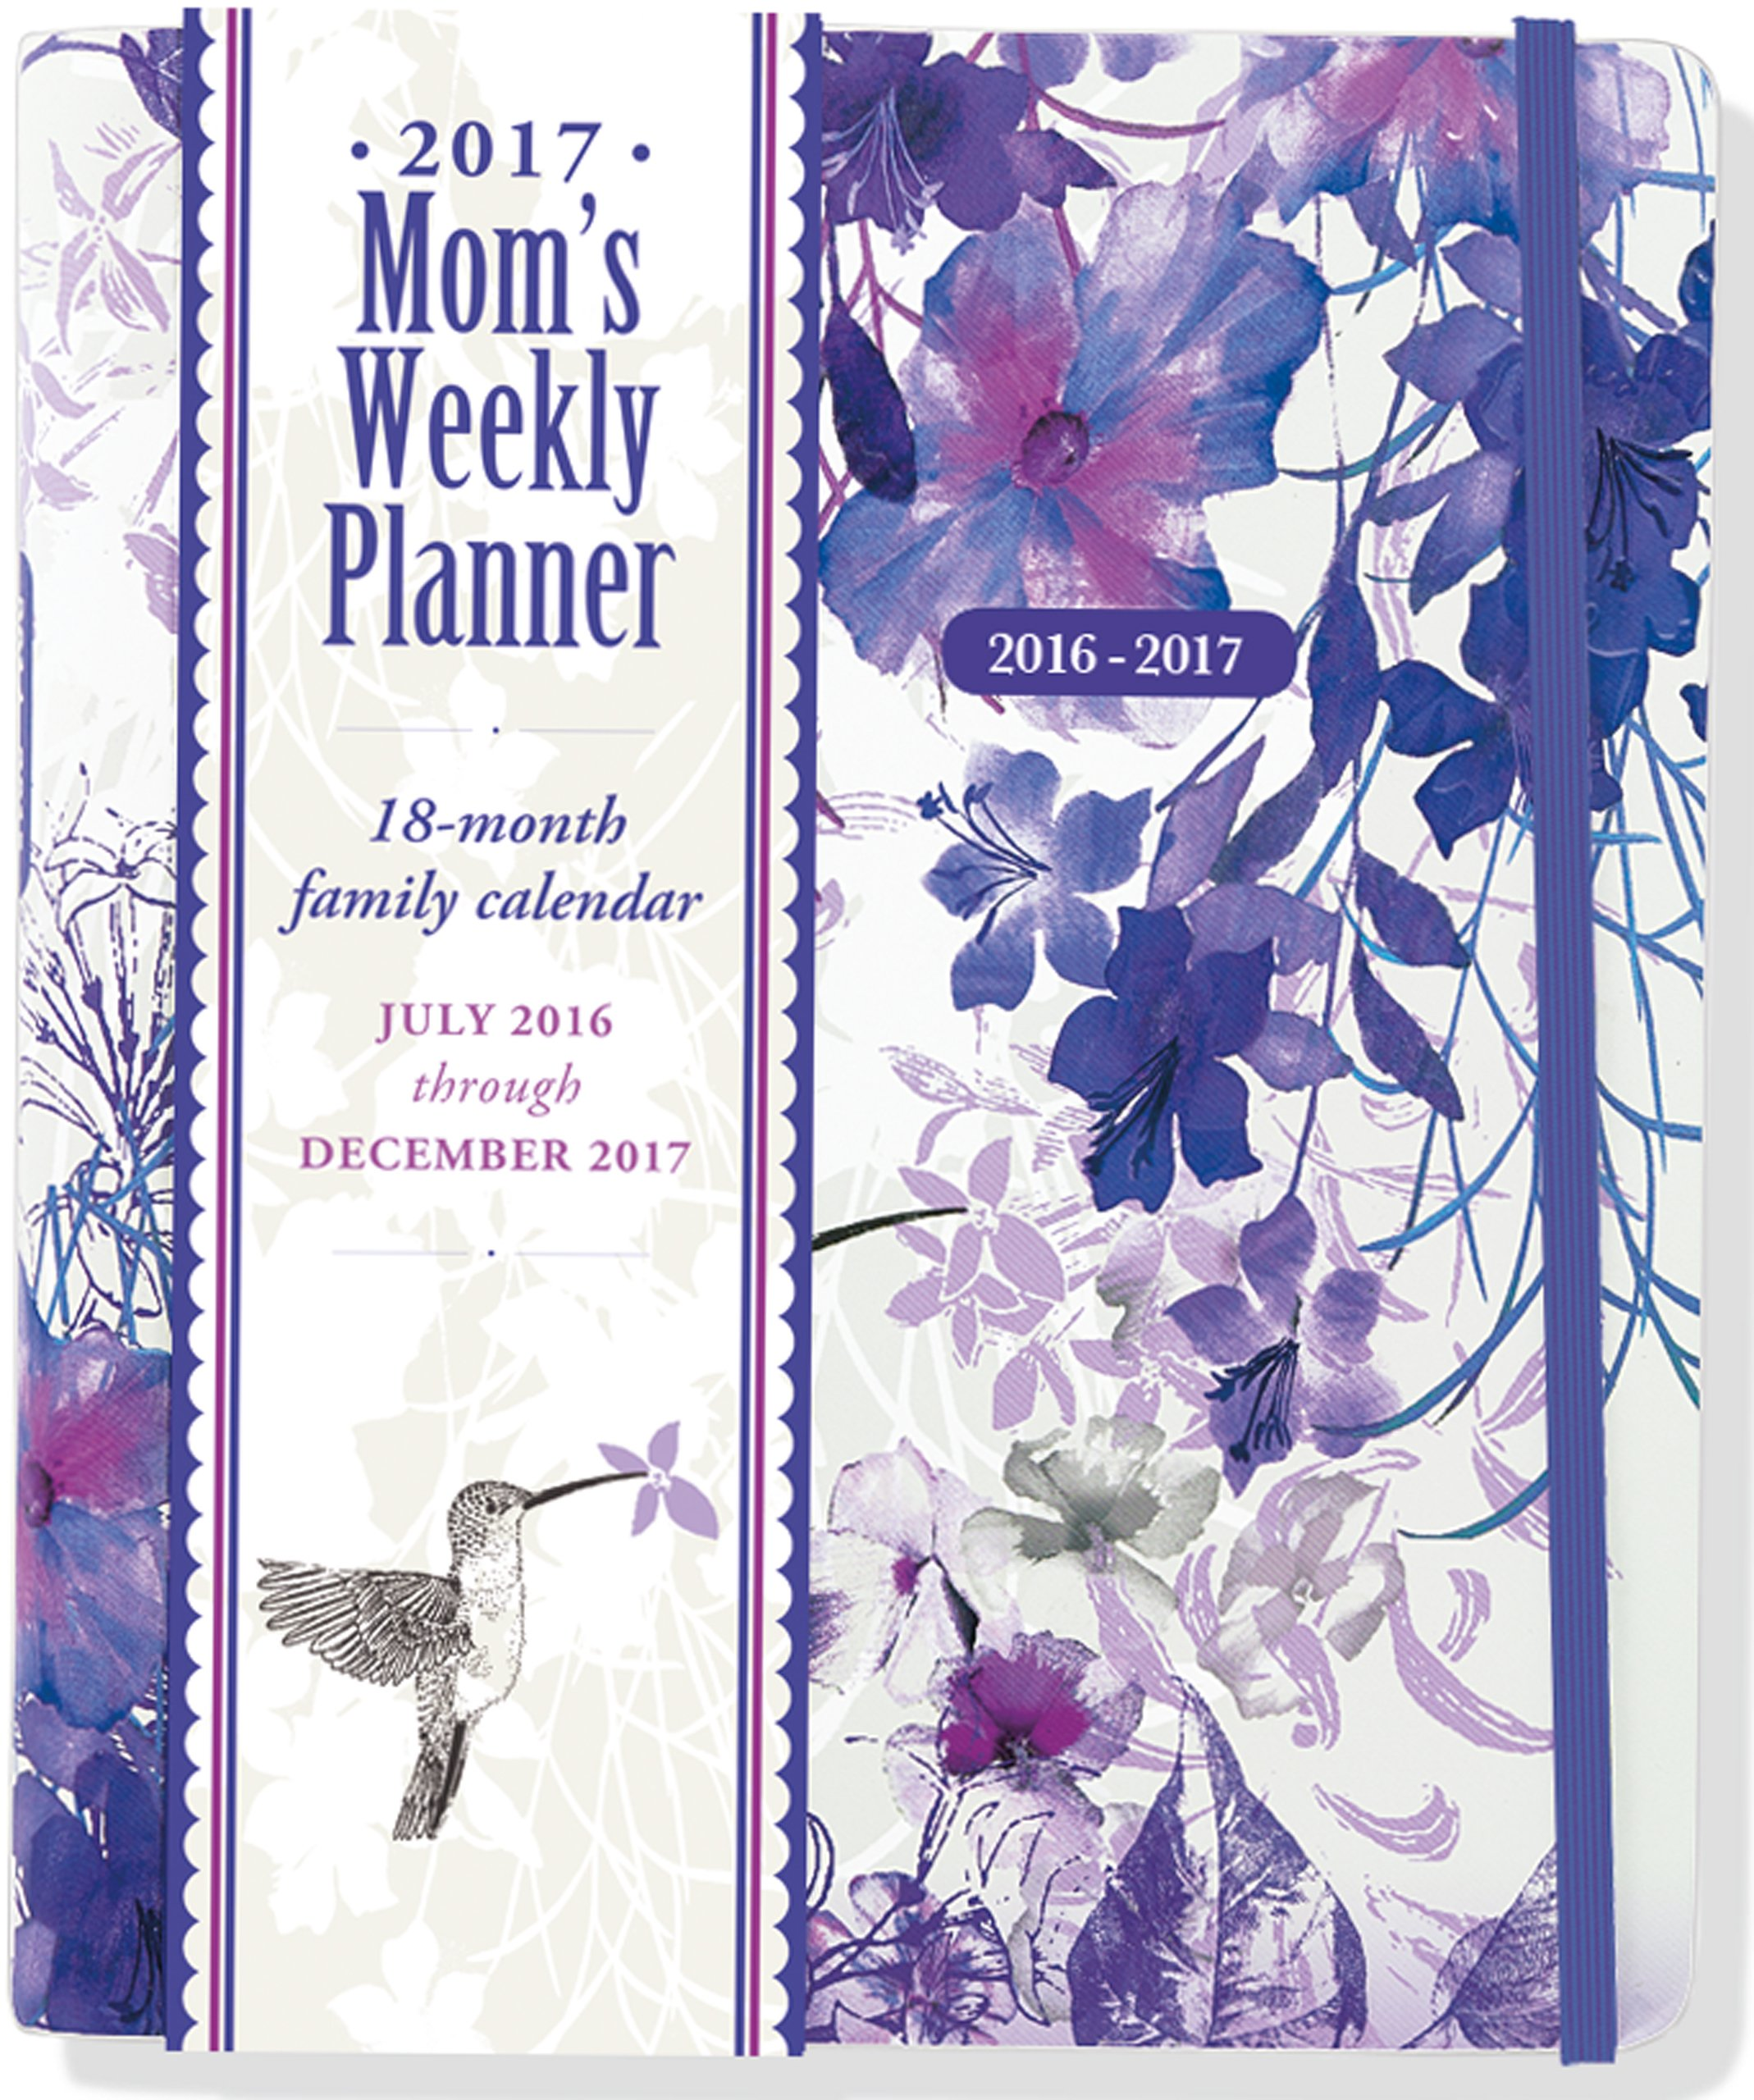 hummingbird bookmark for book lover planners or students unique